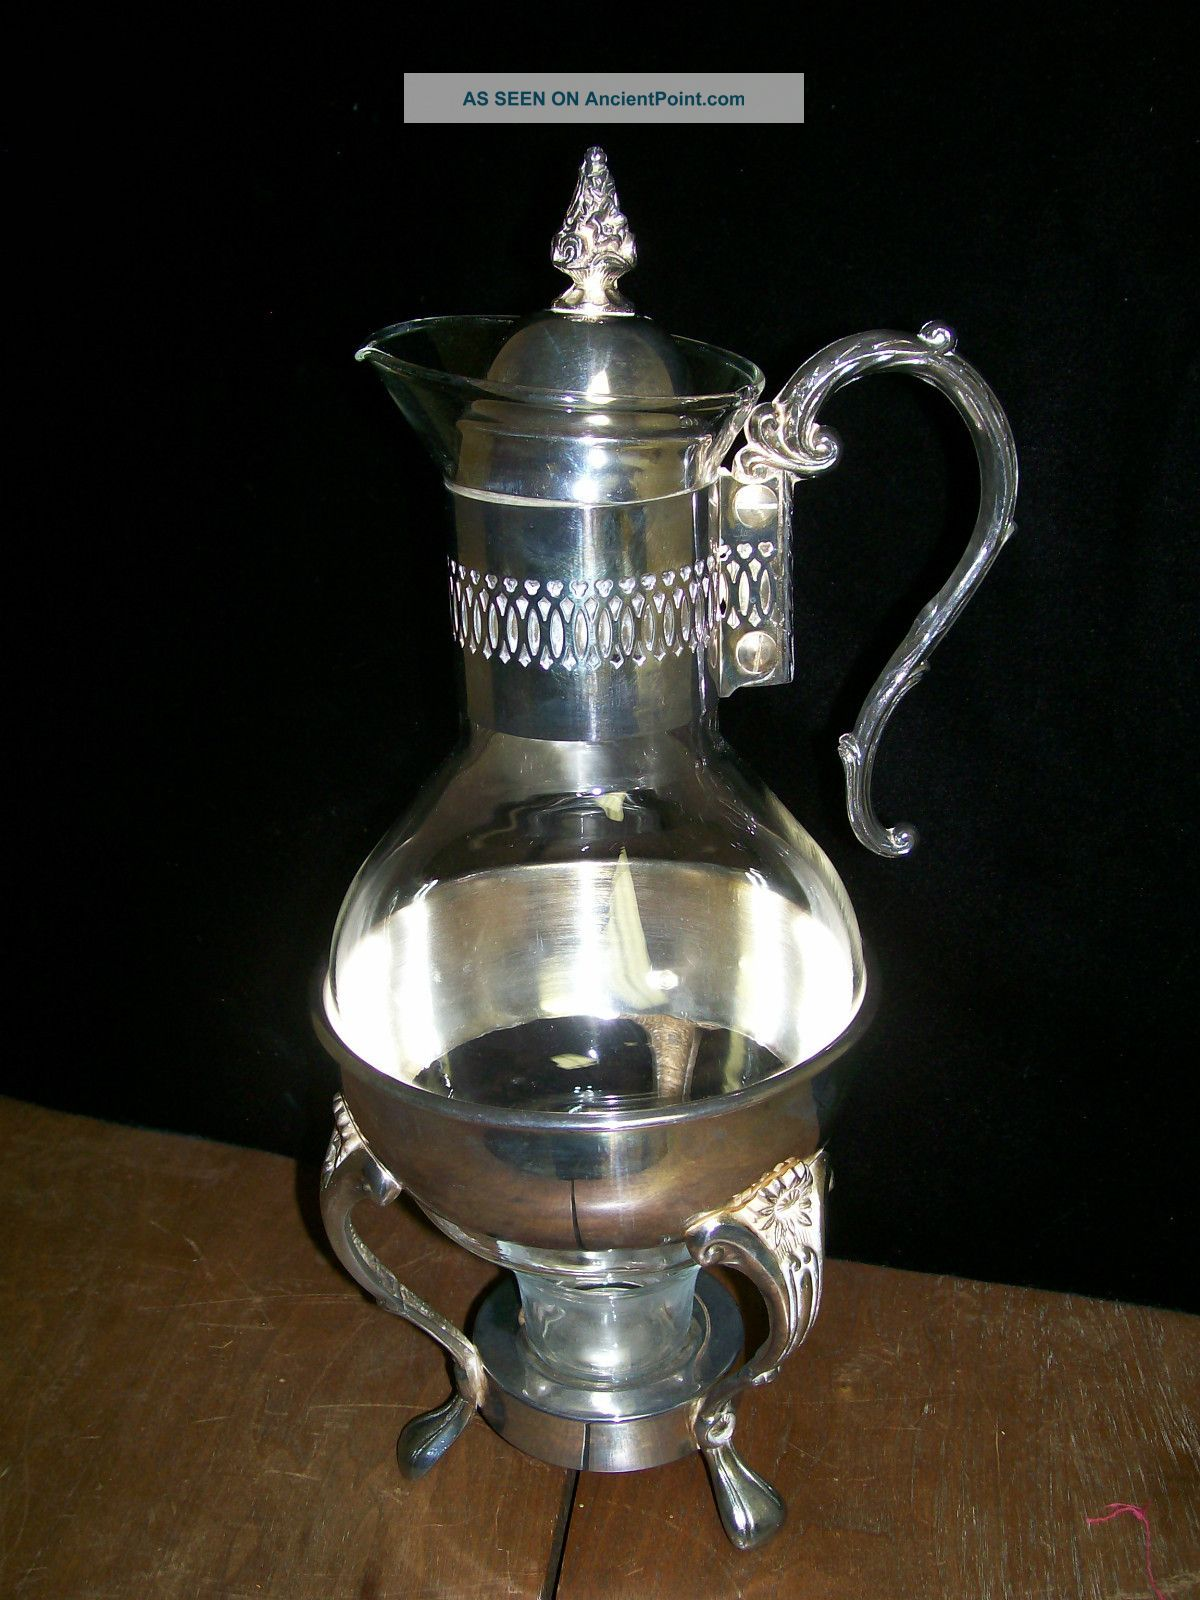 Vintage Silver Plated Glass Coffee Decantor,  Warmer Stand,  Carafe,  Tea Pot Bottles, Decanters & Flasks photo